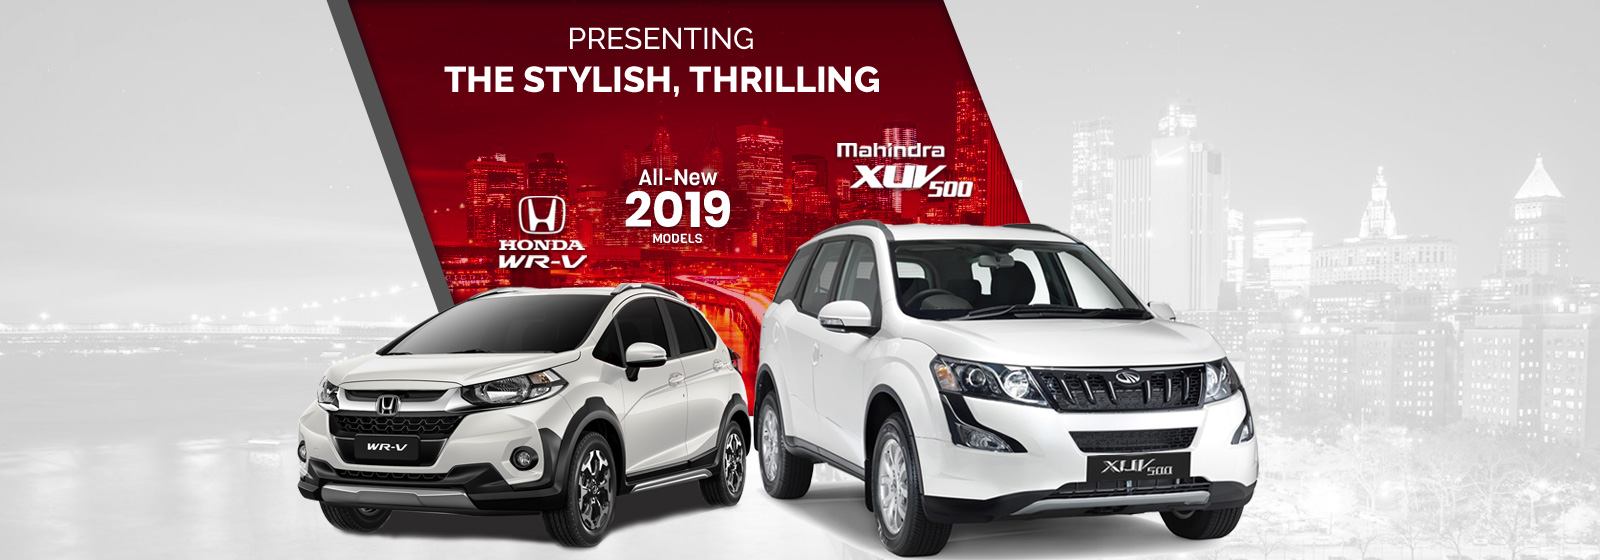 selfdrive.in : All New 2019 Models Mahindra XUV 500, Honda WR-V